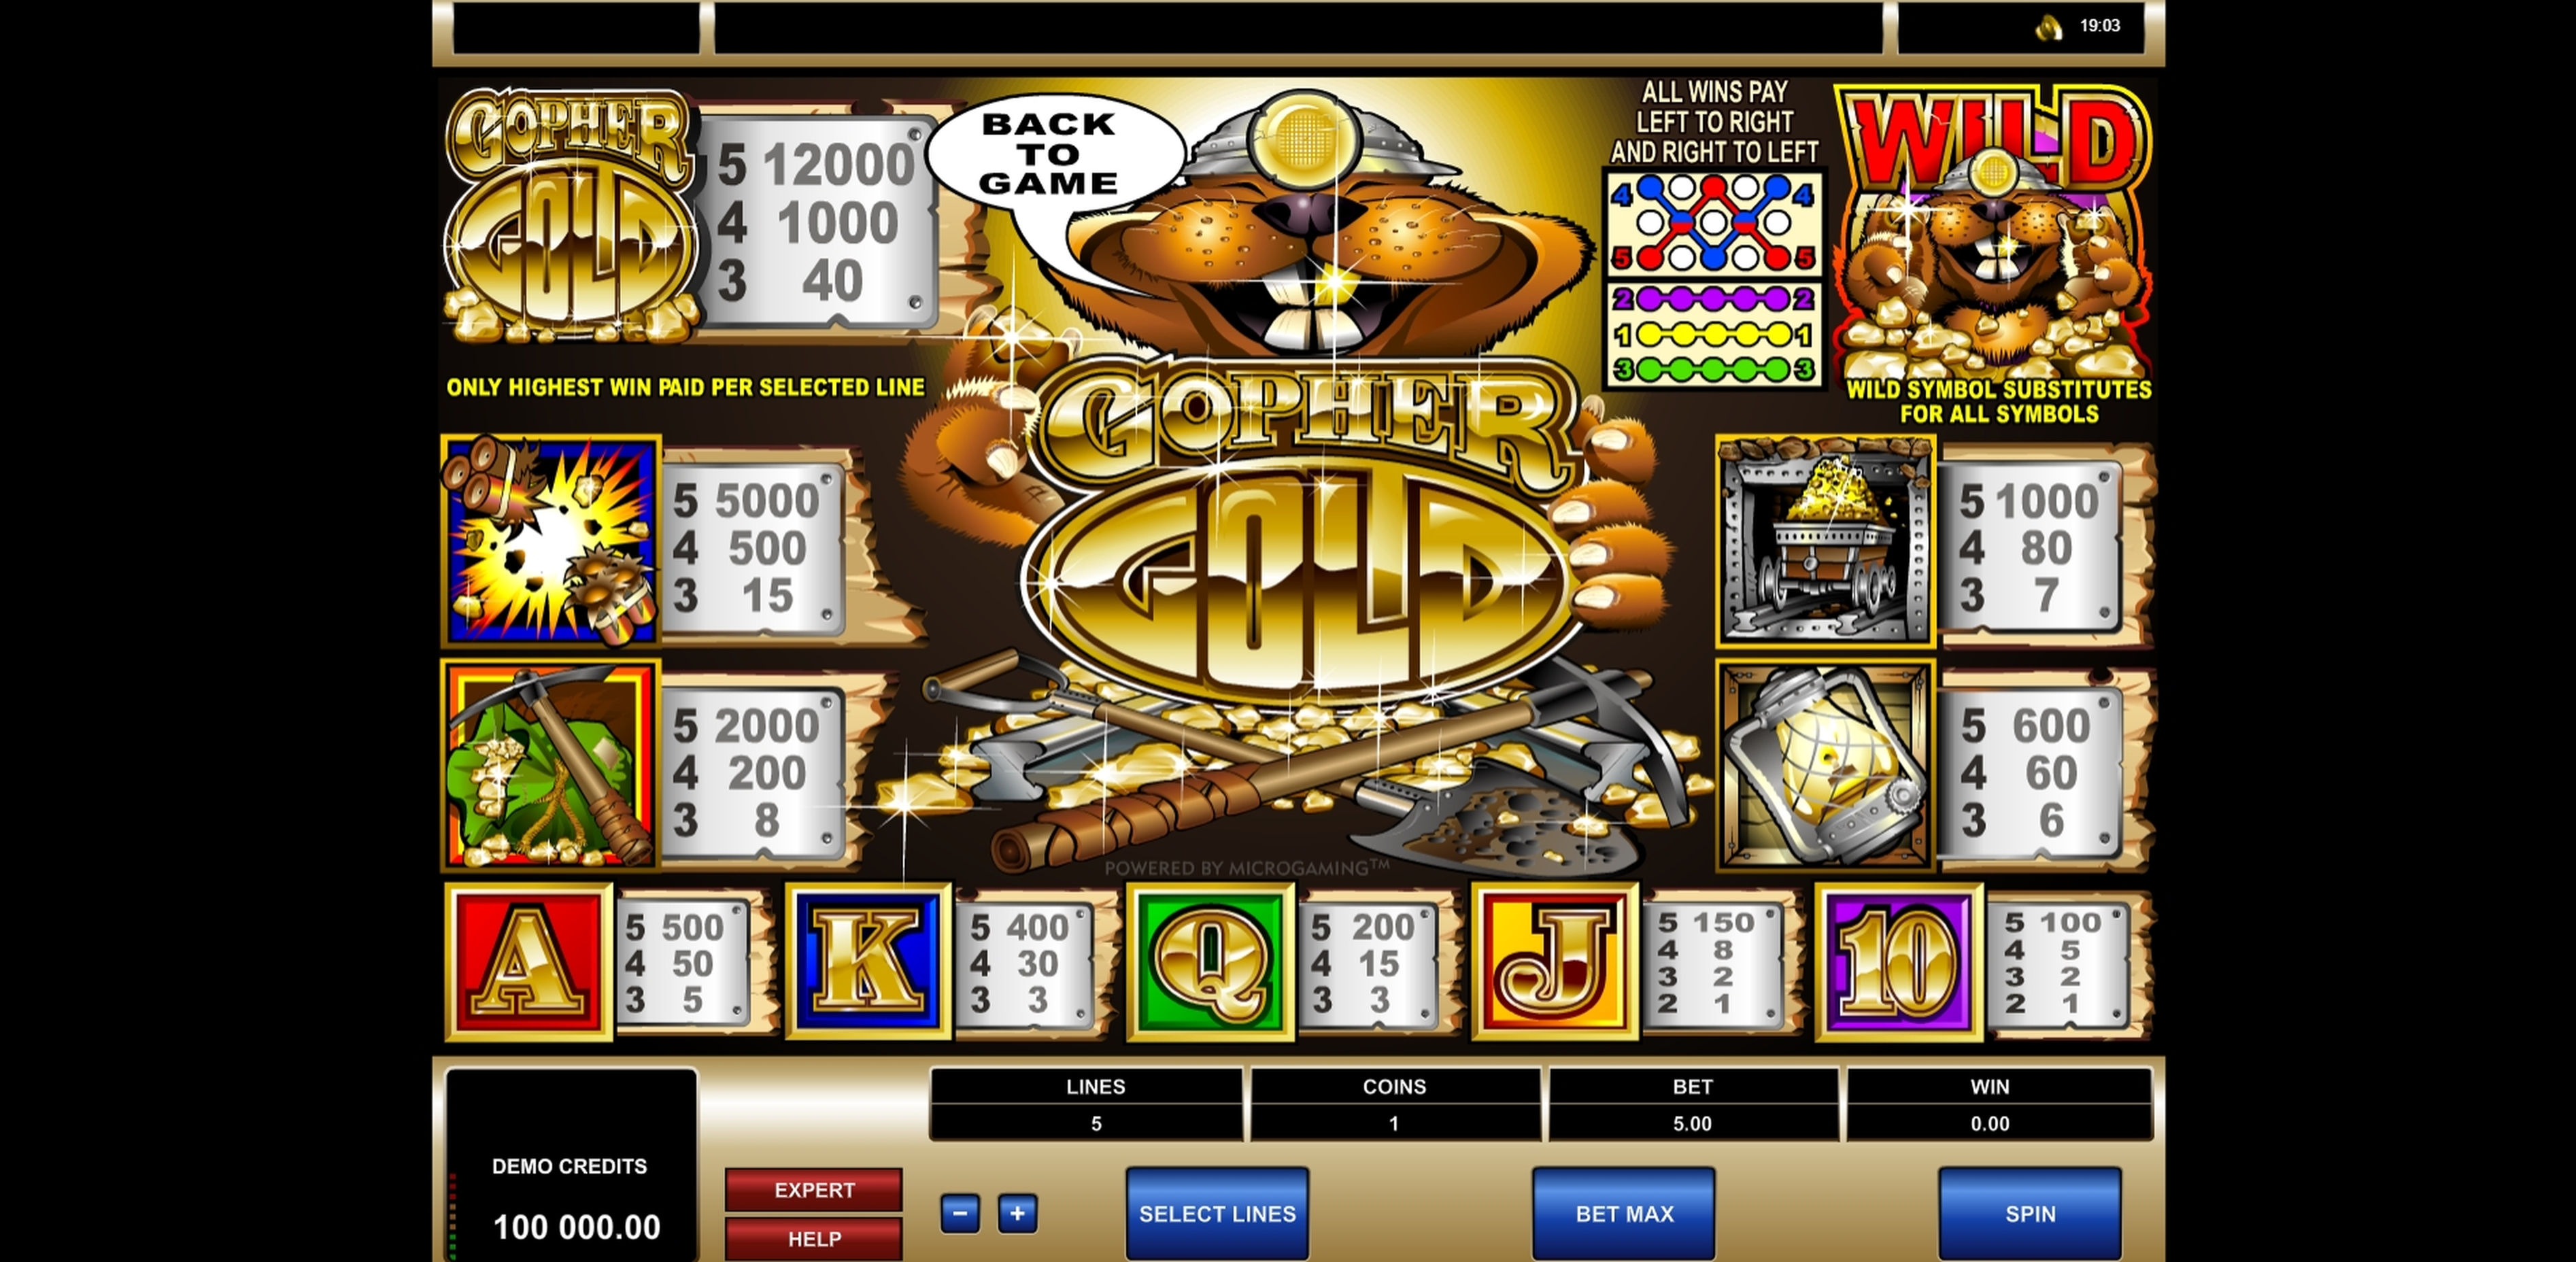 Info of Gopher Gold Slot Game by Microgaming